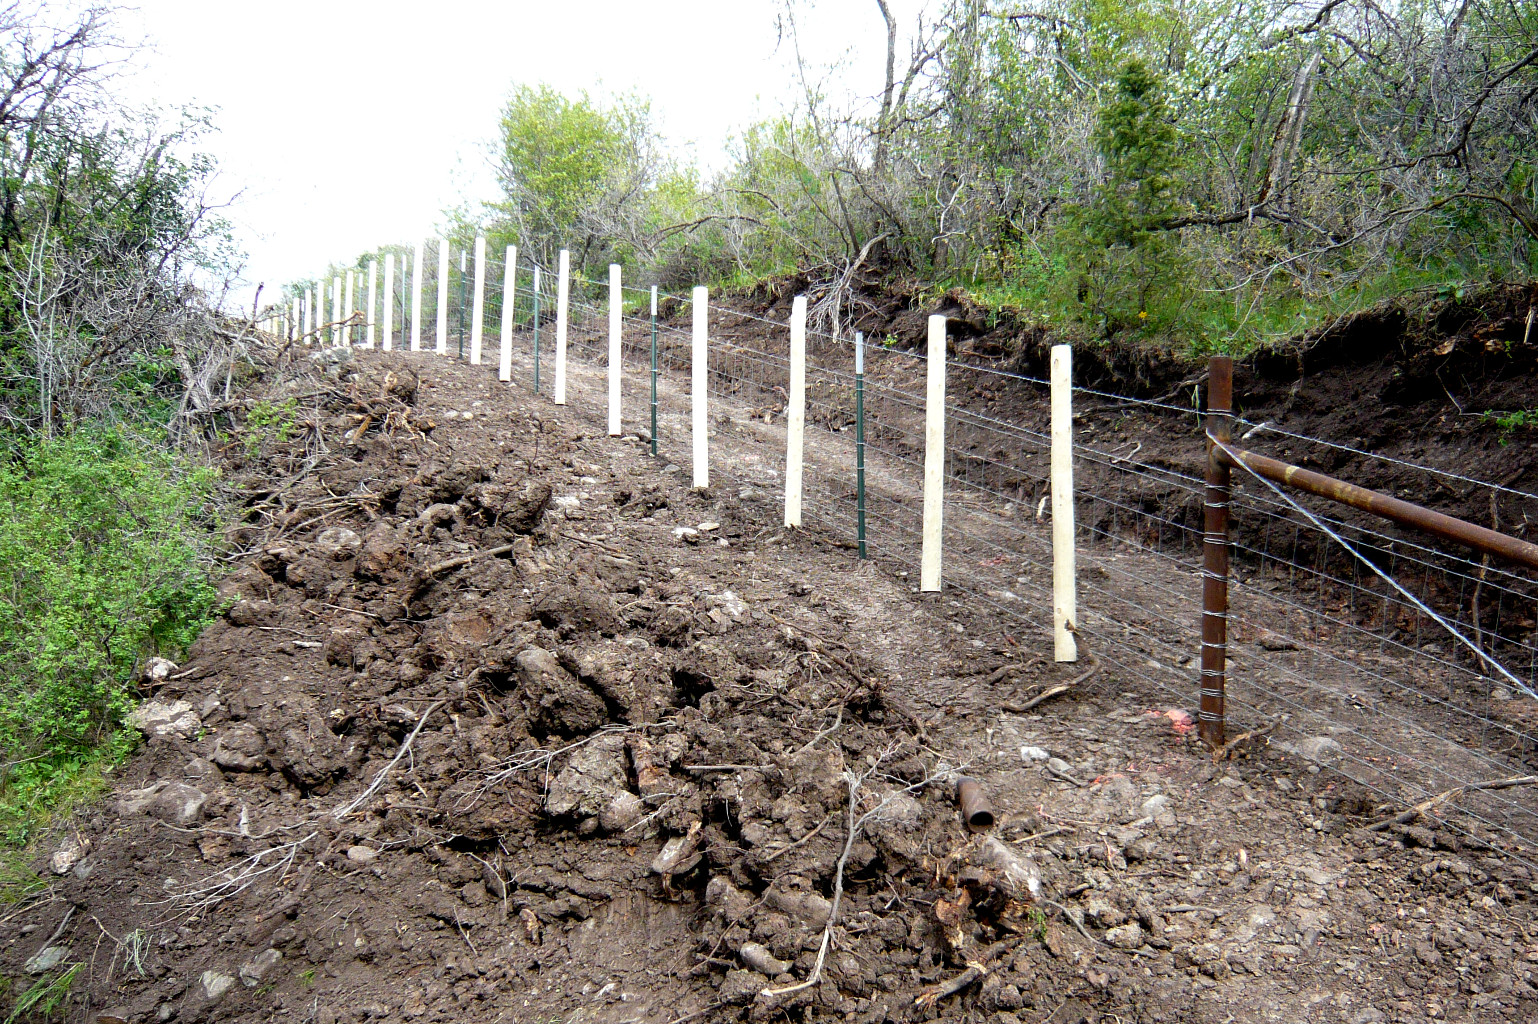 Singleton Fence Agriculturalfence